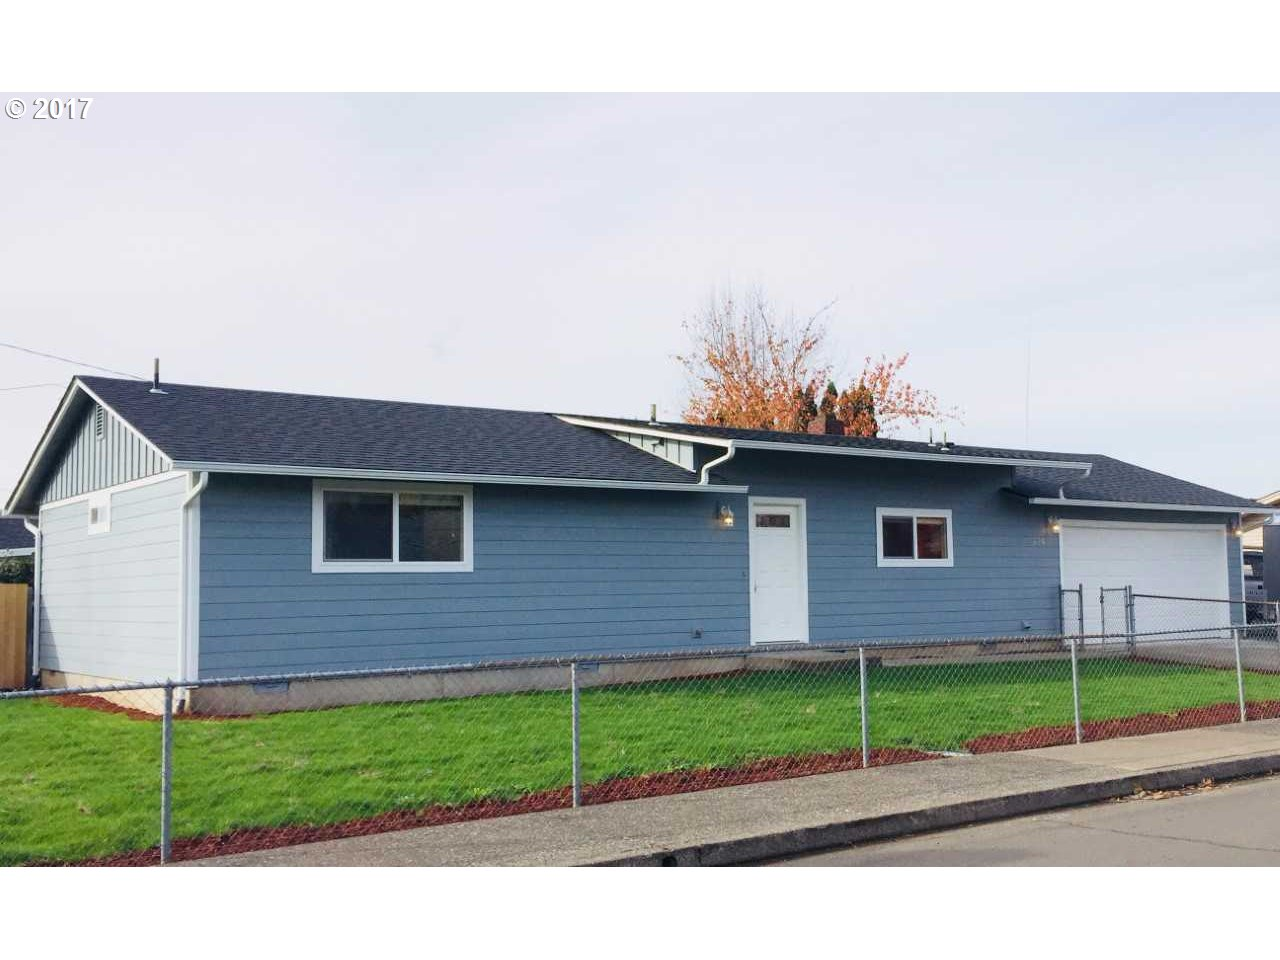 710 53RD ST, Springfield OR 97478